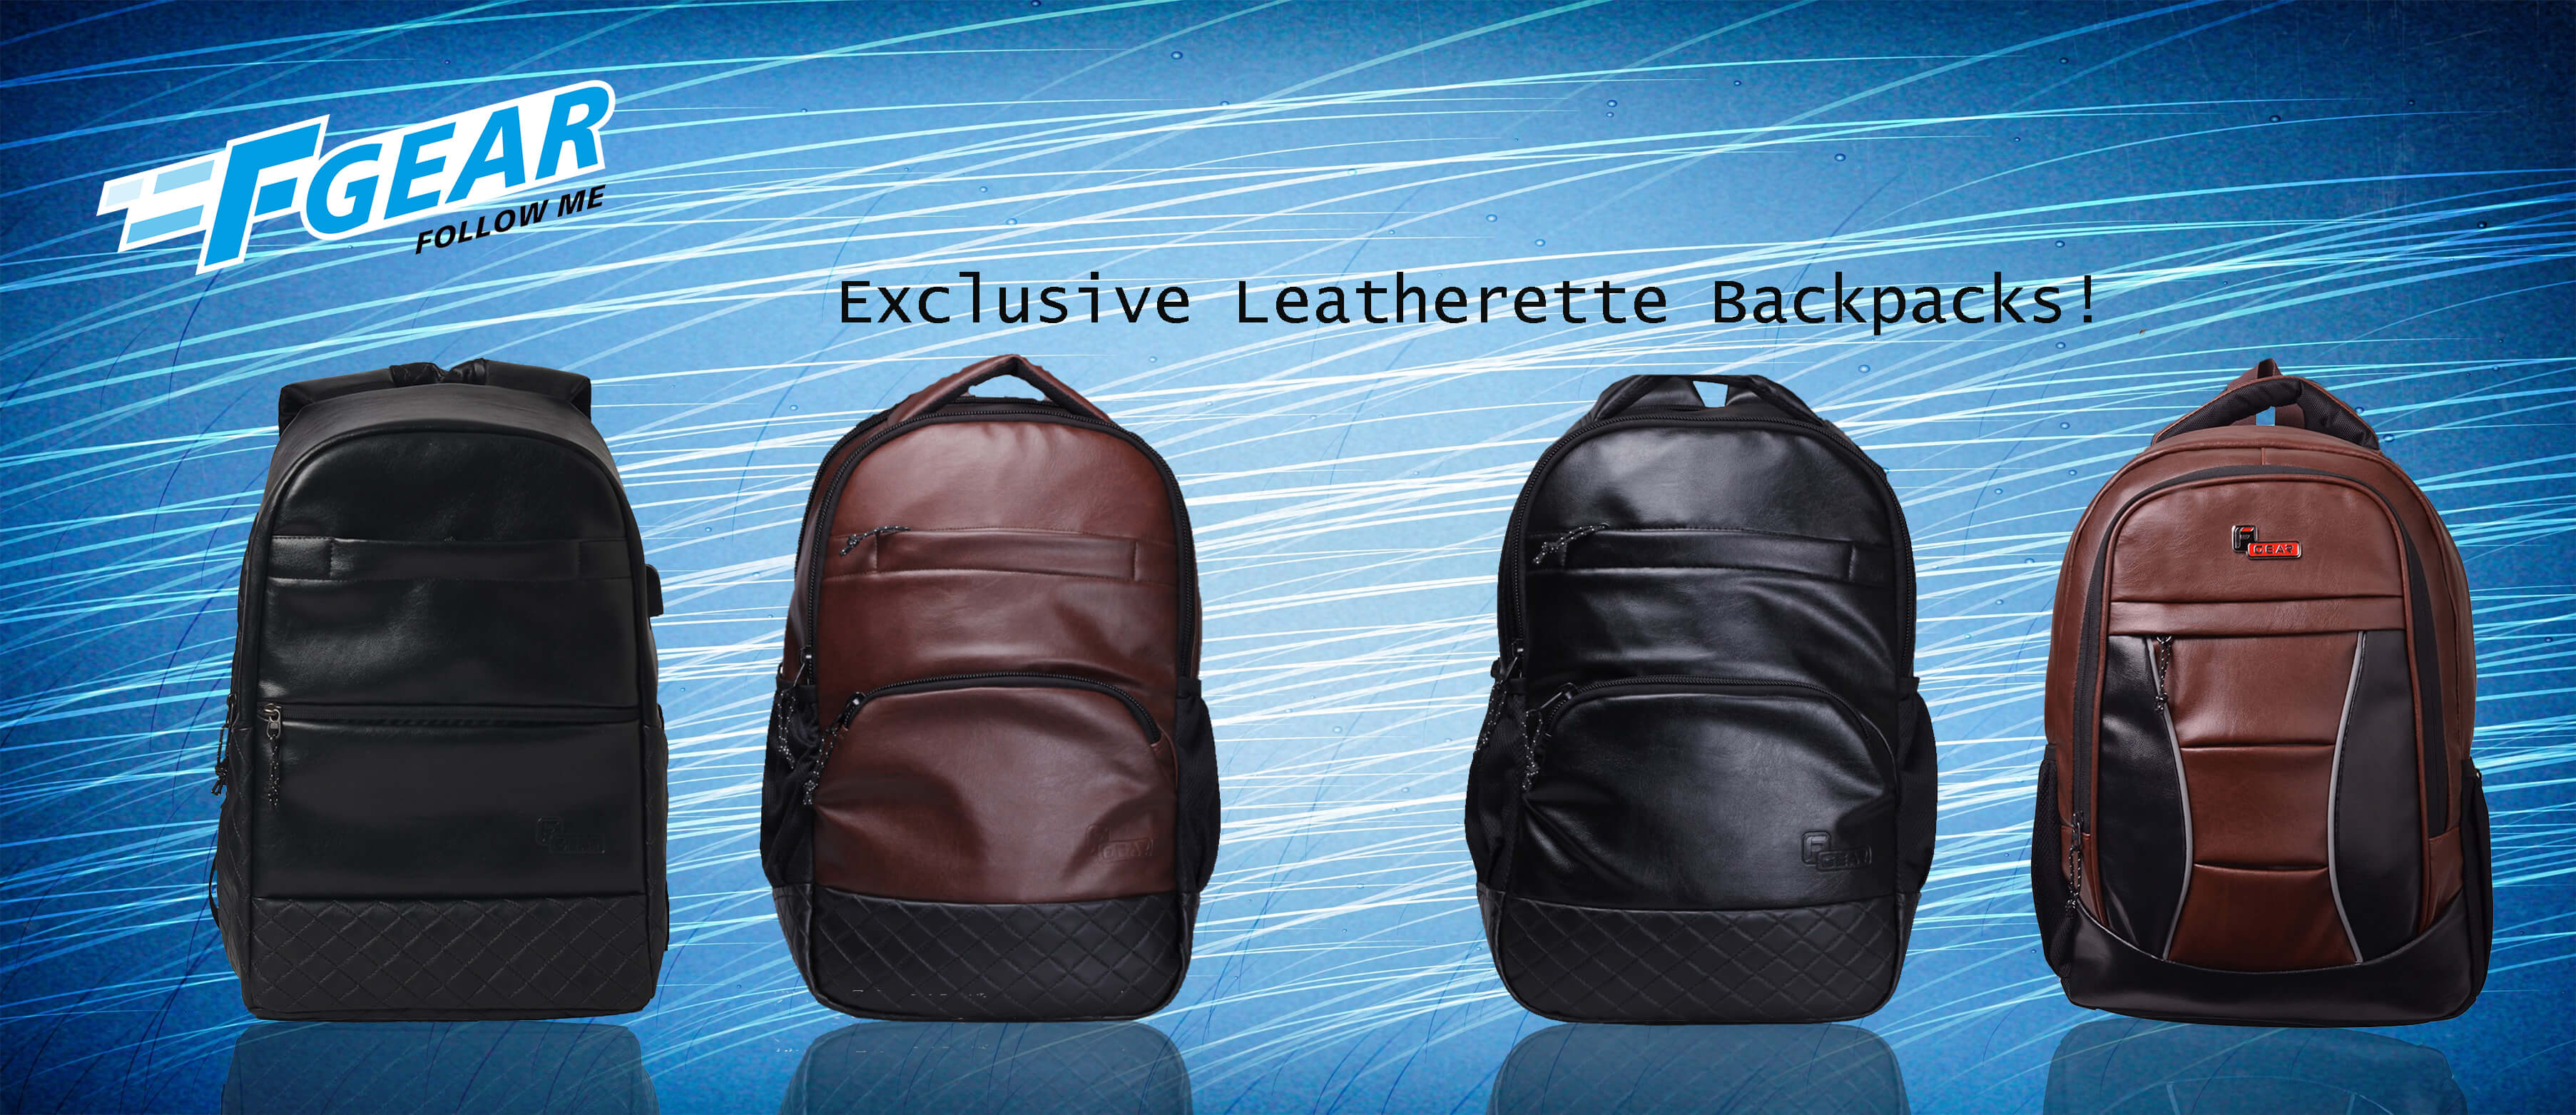 aabf1d3dfb ... Online Shopping of Laptop backpacks Strolleys from F Gear Best ...  6c5f4745be; Laptop Bags ...